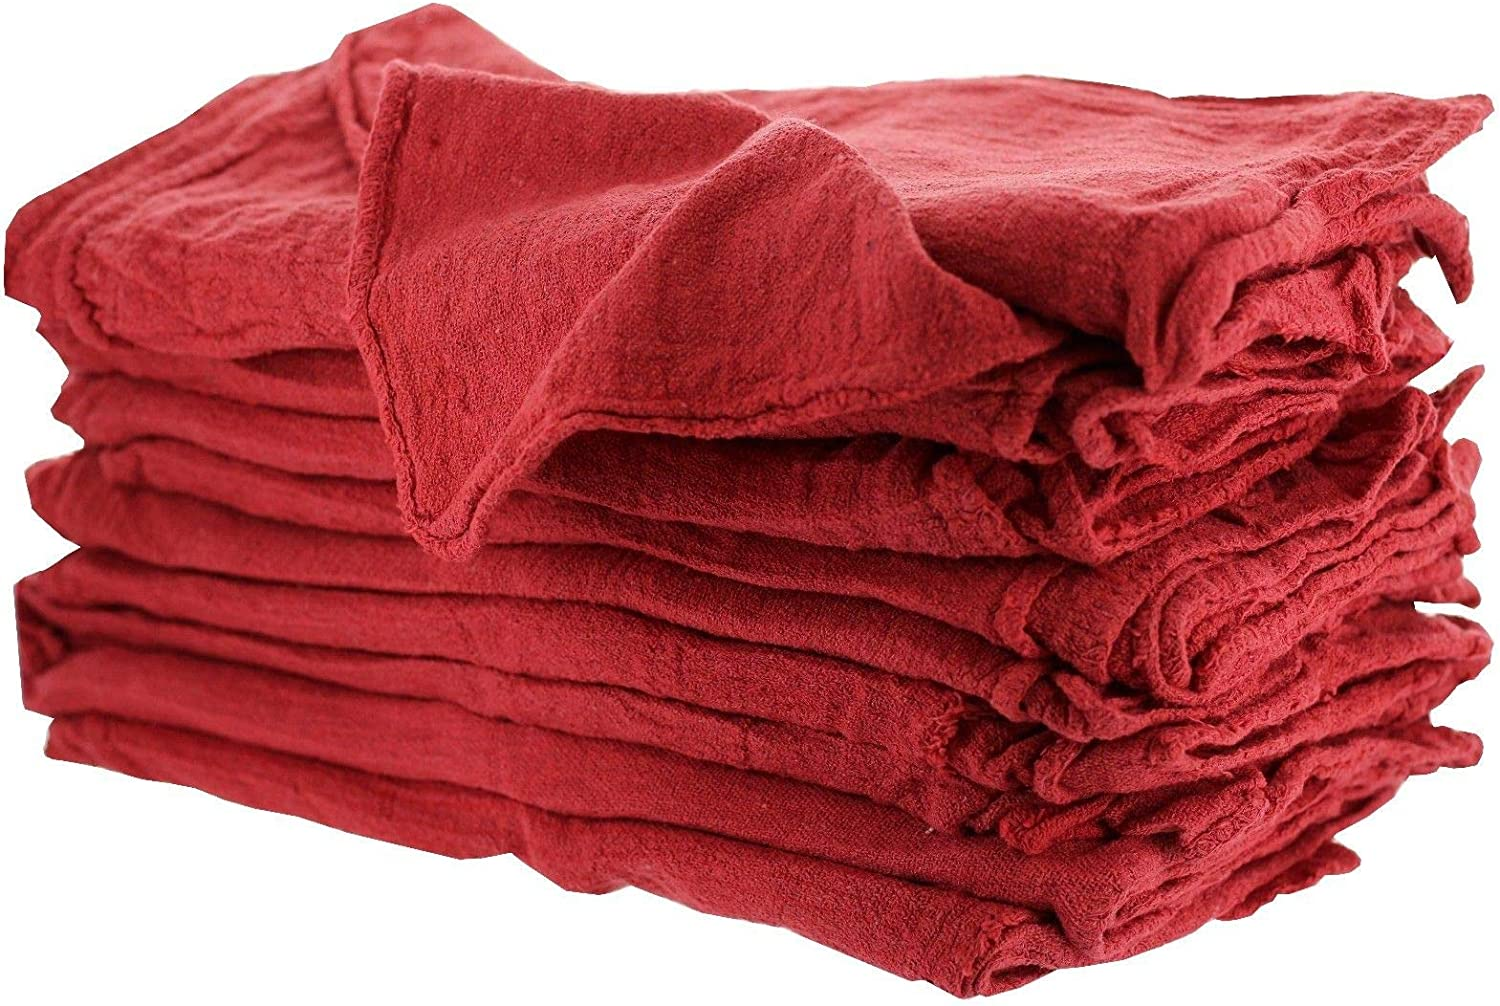 1000 Pieces A Grade Red Shop Towels by MIMAATEX-14 x 14 Inches New 100/% Cotton-Box of 1000 Pieces